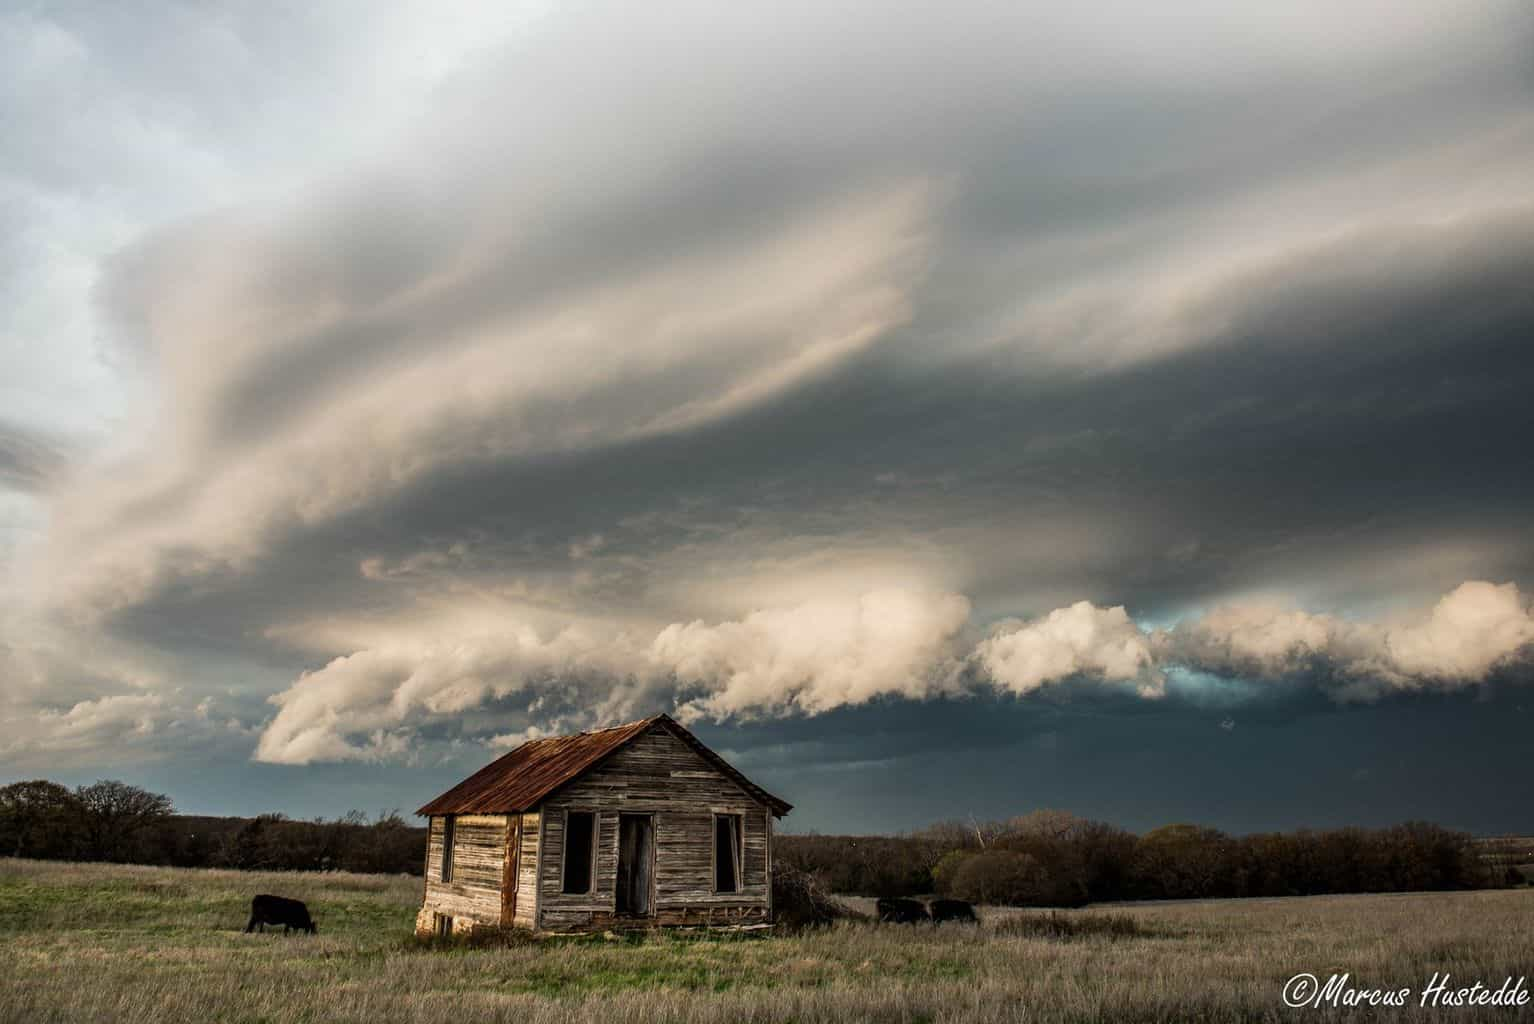 Shawnee, OK March 25, 2015...approaching shelf cloud with an old prairie house and grazing cows.